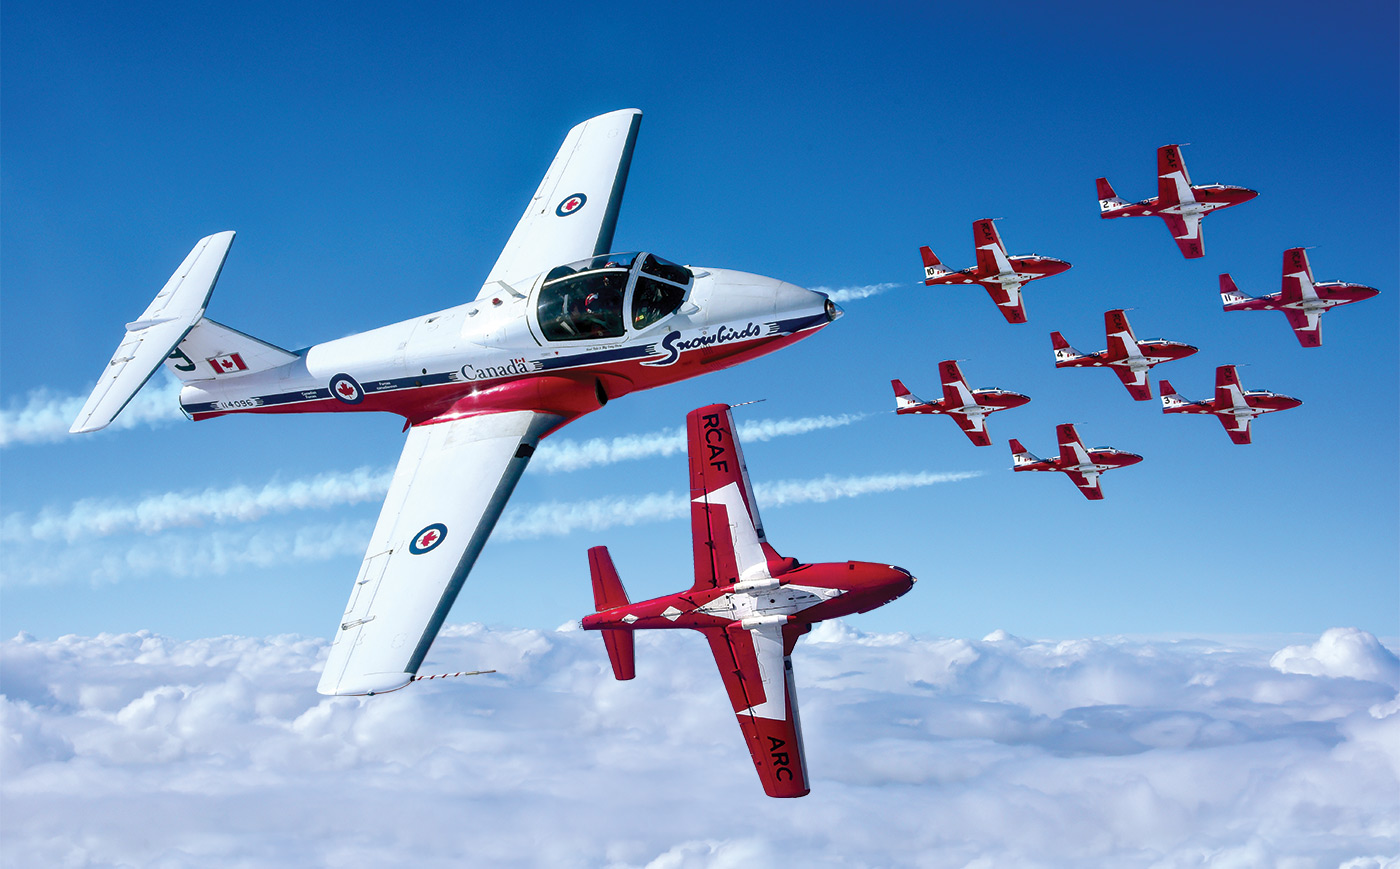 Canadian Forces Snowbirds in flight